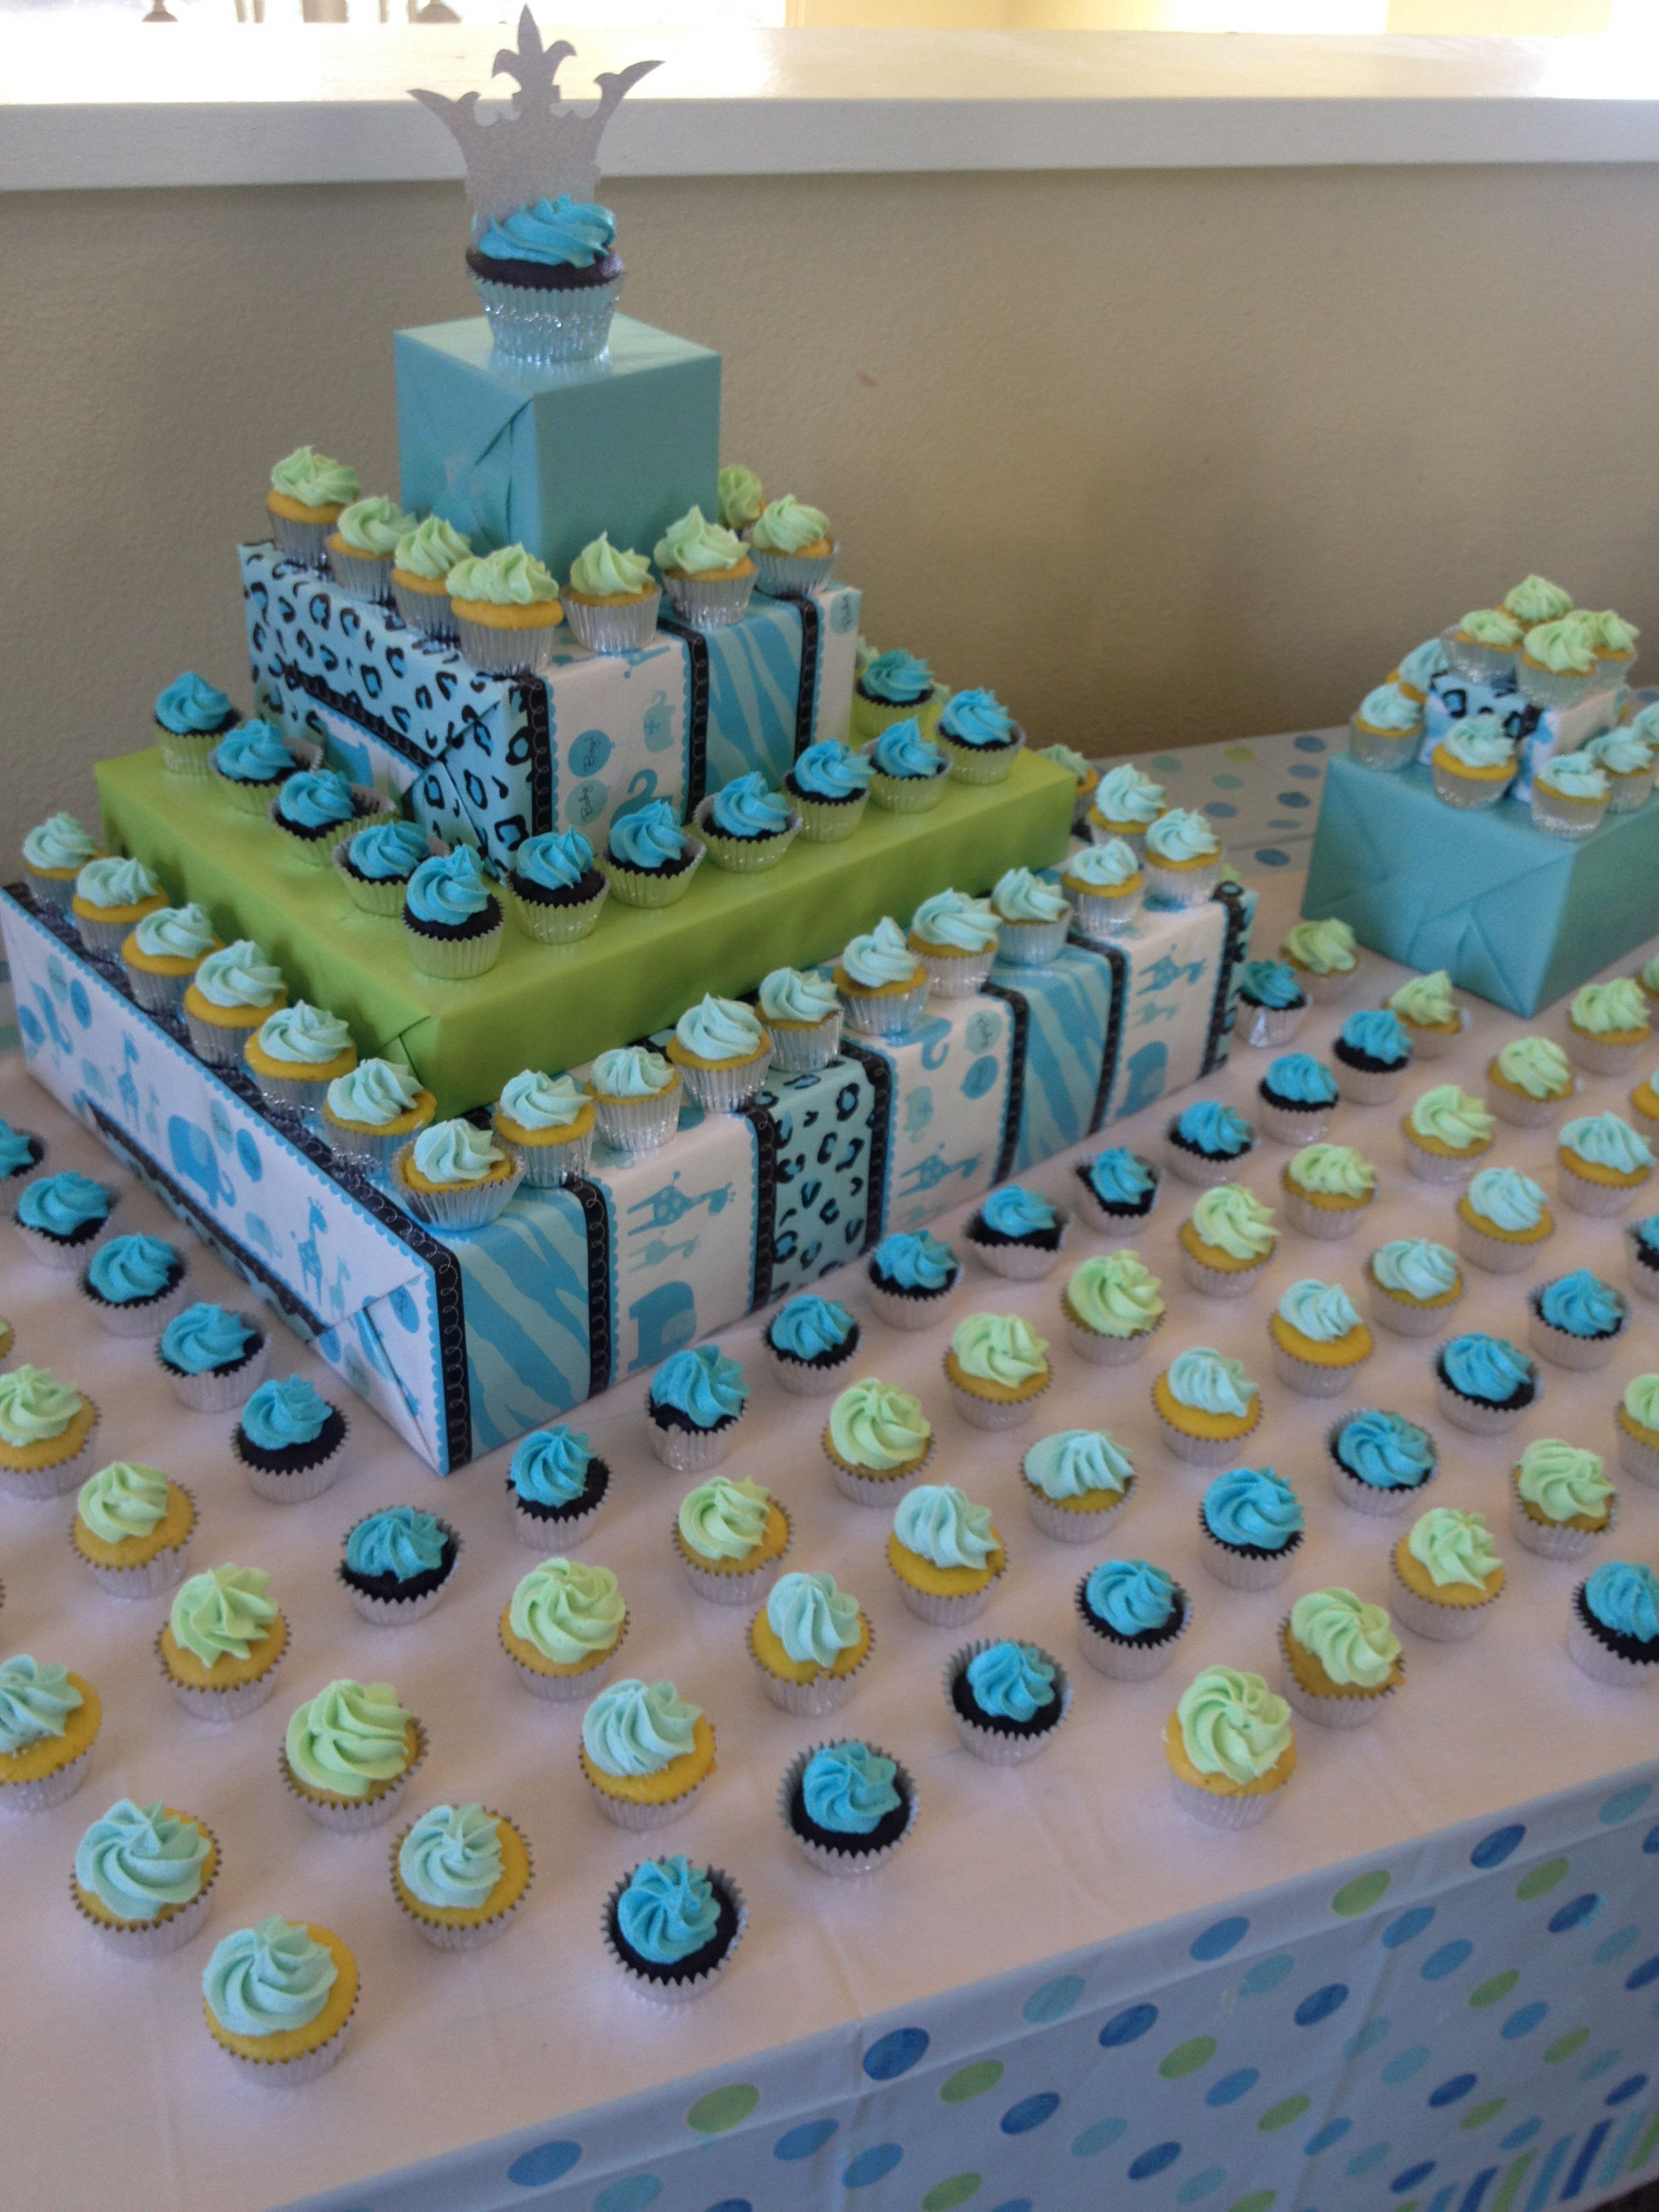 20 Cupcake Stand Baby Shower Centerpiece Pictures And Ideas On